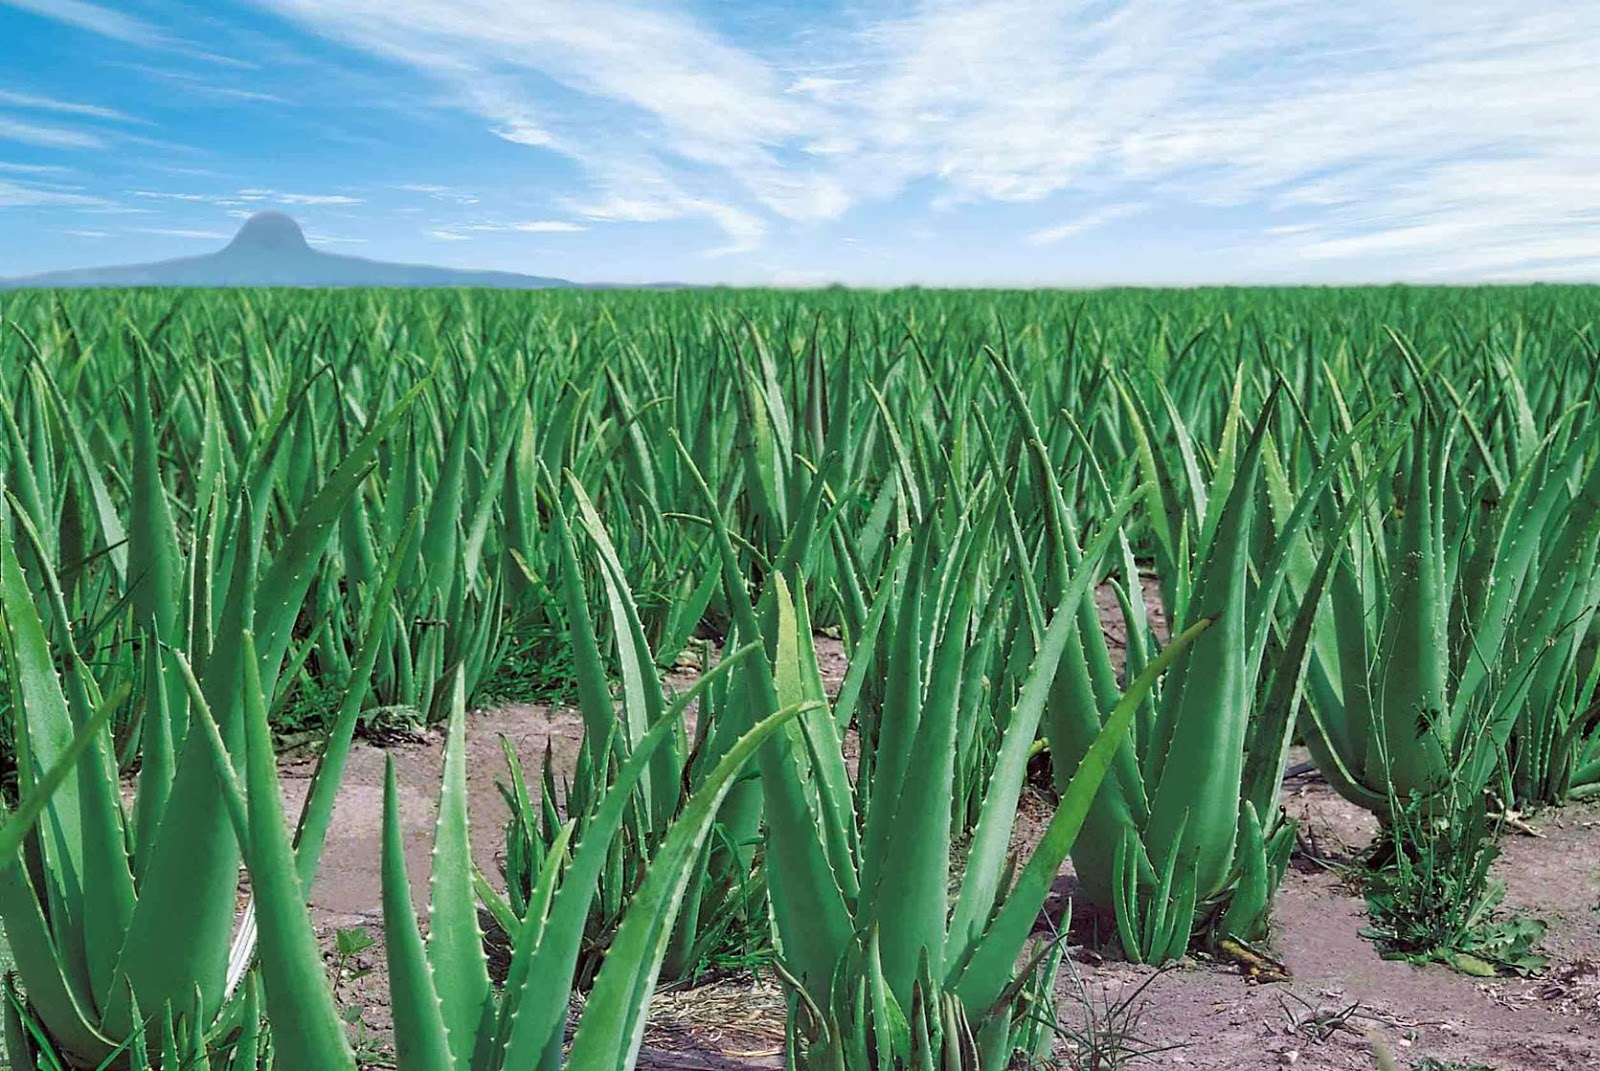 HOW TO GROW ALOE VERA The Garden of Eaden